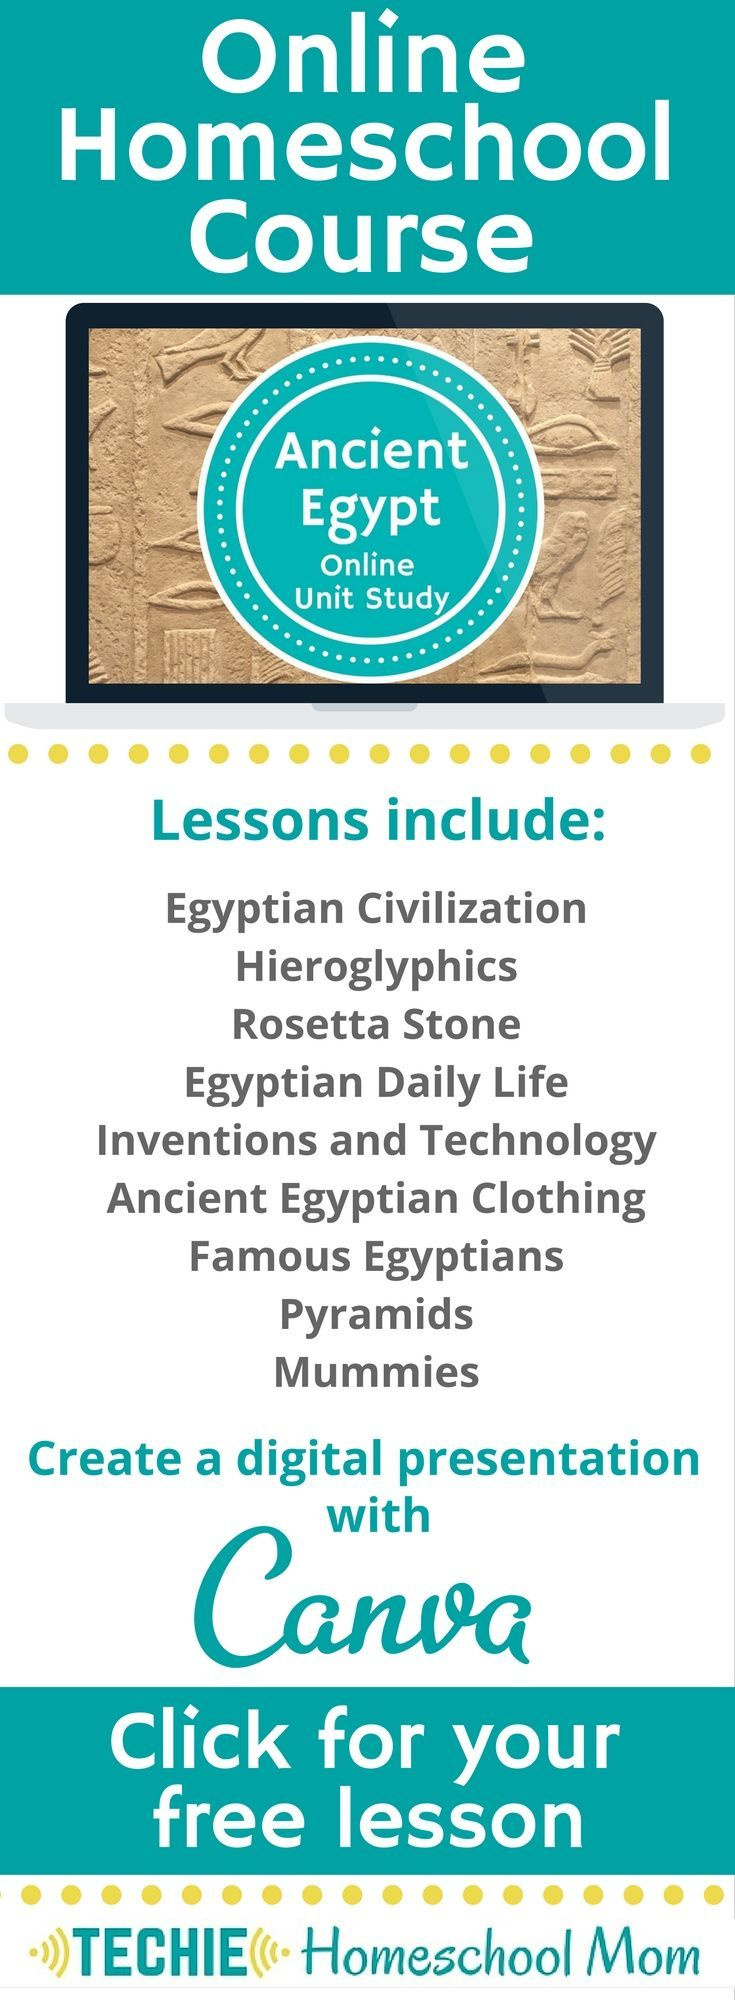 Try the Ancient Egypt Online Unit Study. This online homeschool course integrates multiple subjects for multiple ages of students. Access websites and videos and complete digital projects. With Online Unit Studies' easy-to-use E-course format, no additional books or downloads are needed. Just gather supplies for hands-on projects and register for online tools. Click for your free lesson.